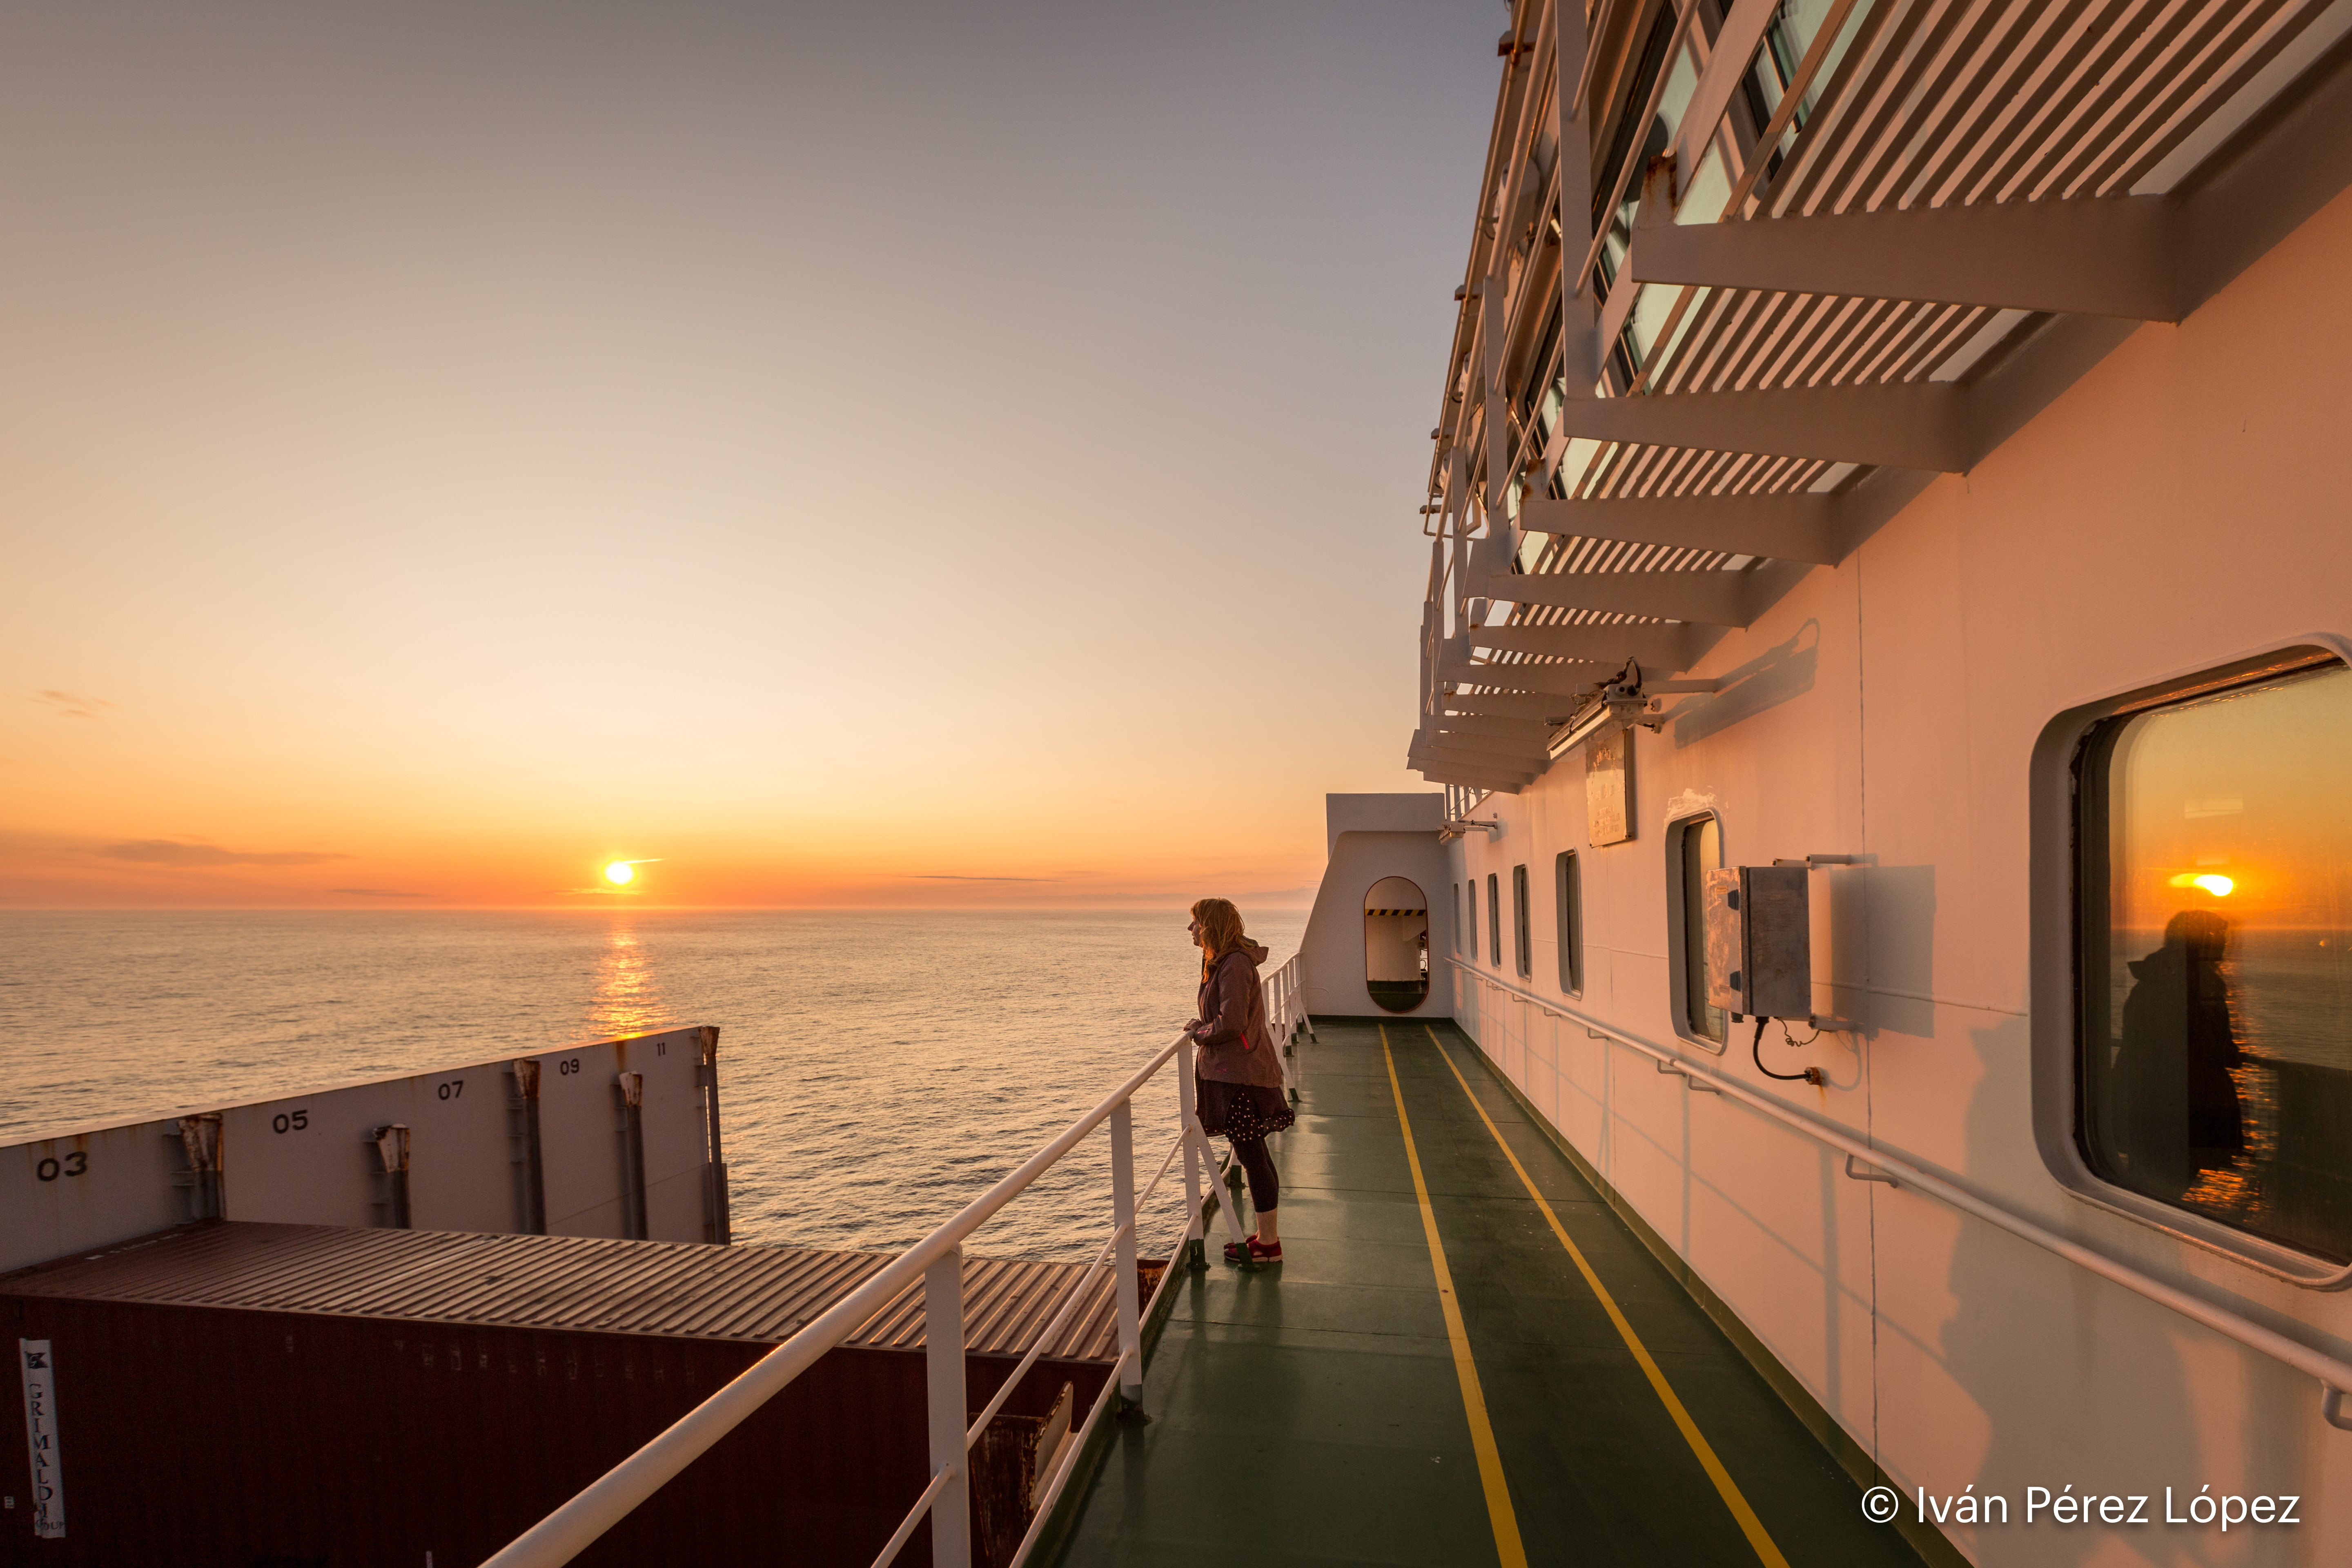 A woman stands on deck of a large ship, lookinhg out to sea. A sunset is beihnd her.